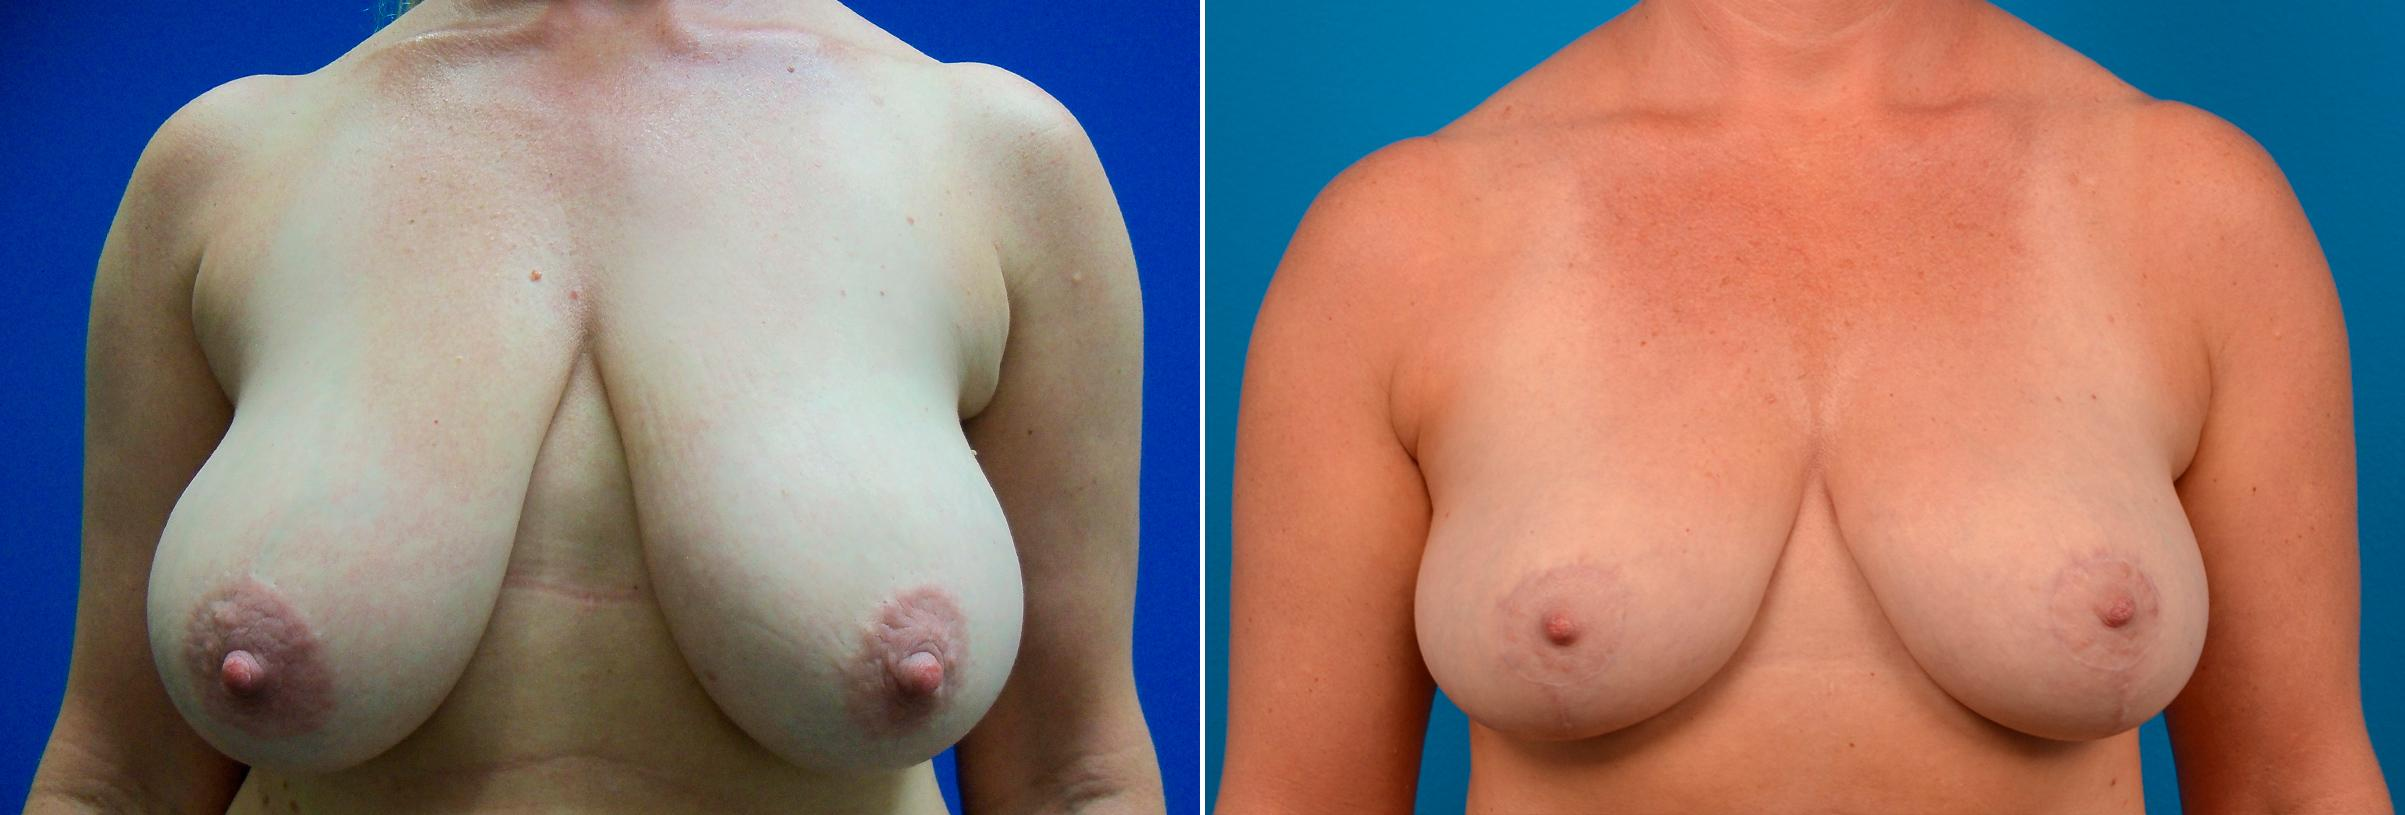 pt-15099-breast-reduction-before-after